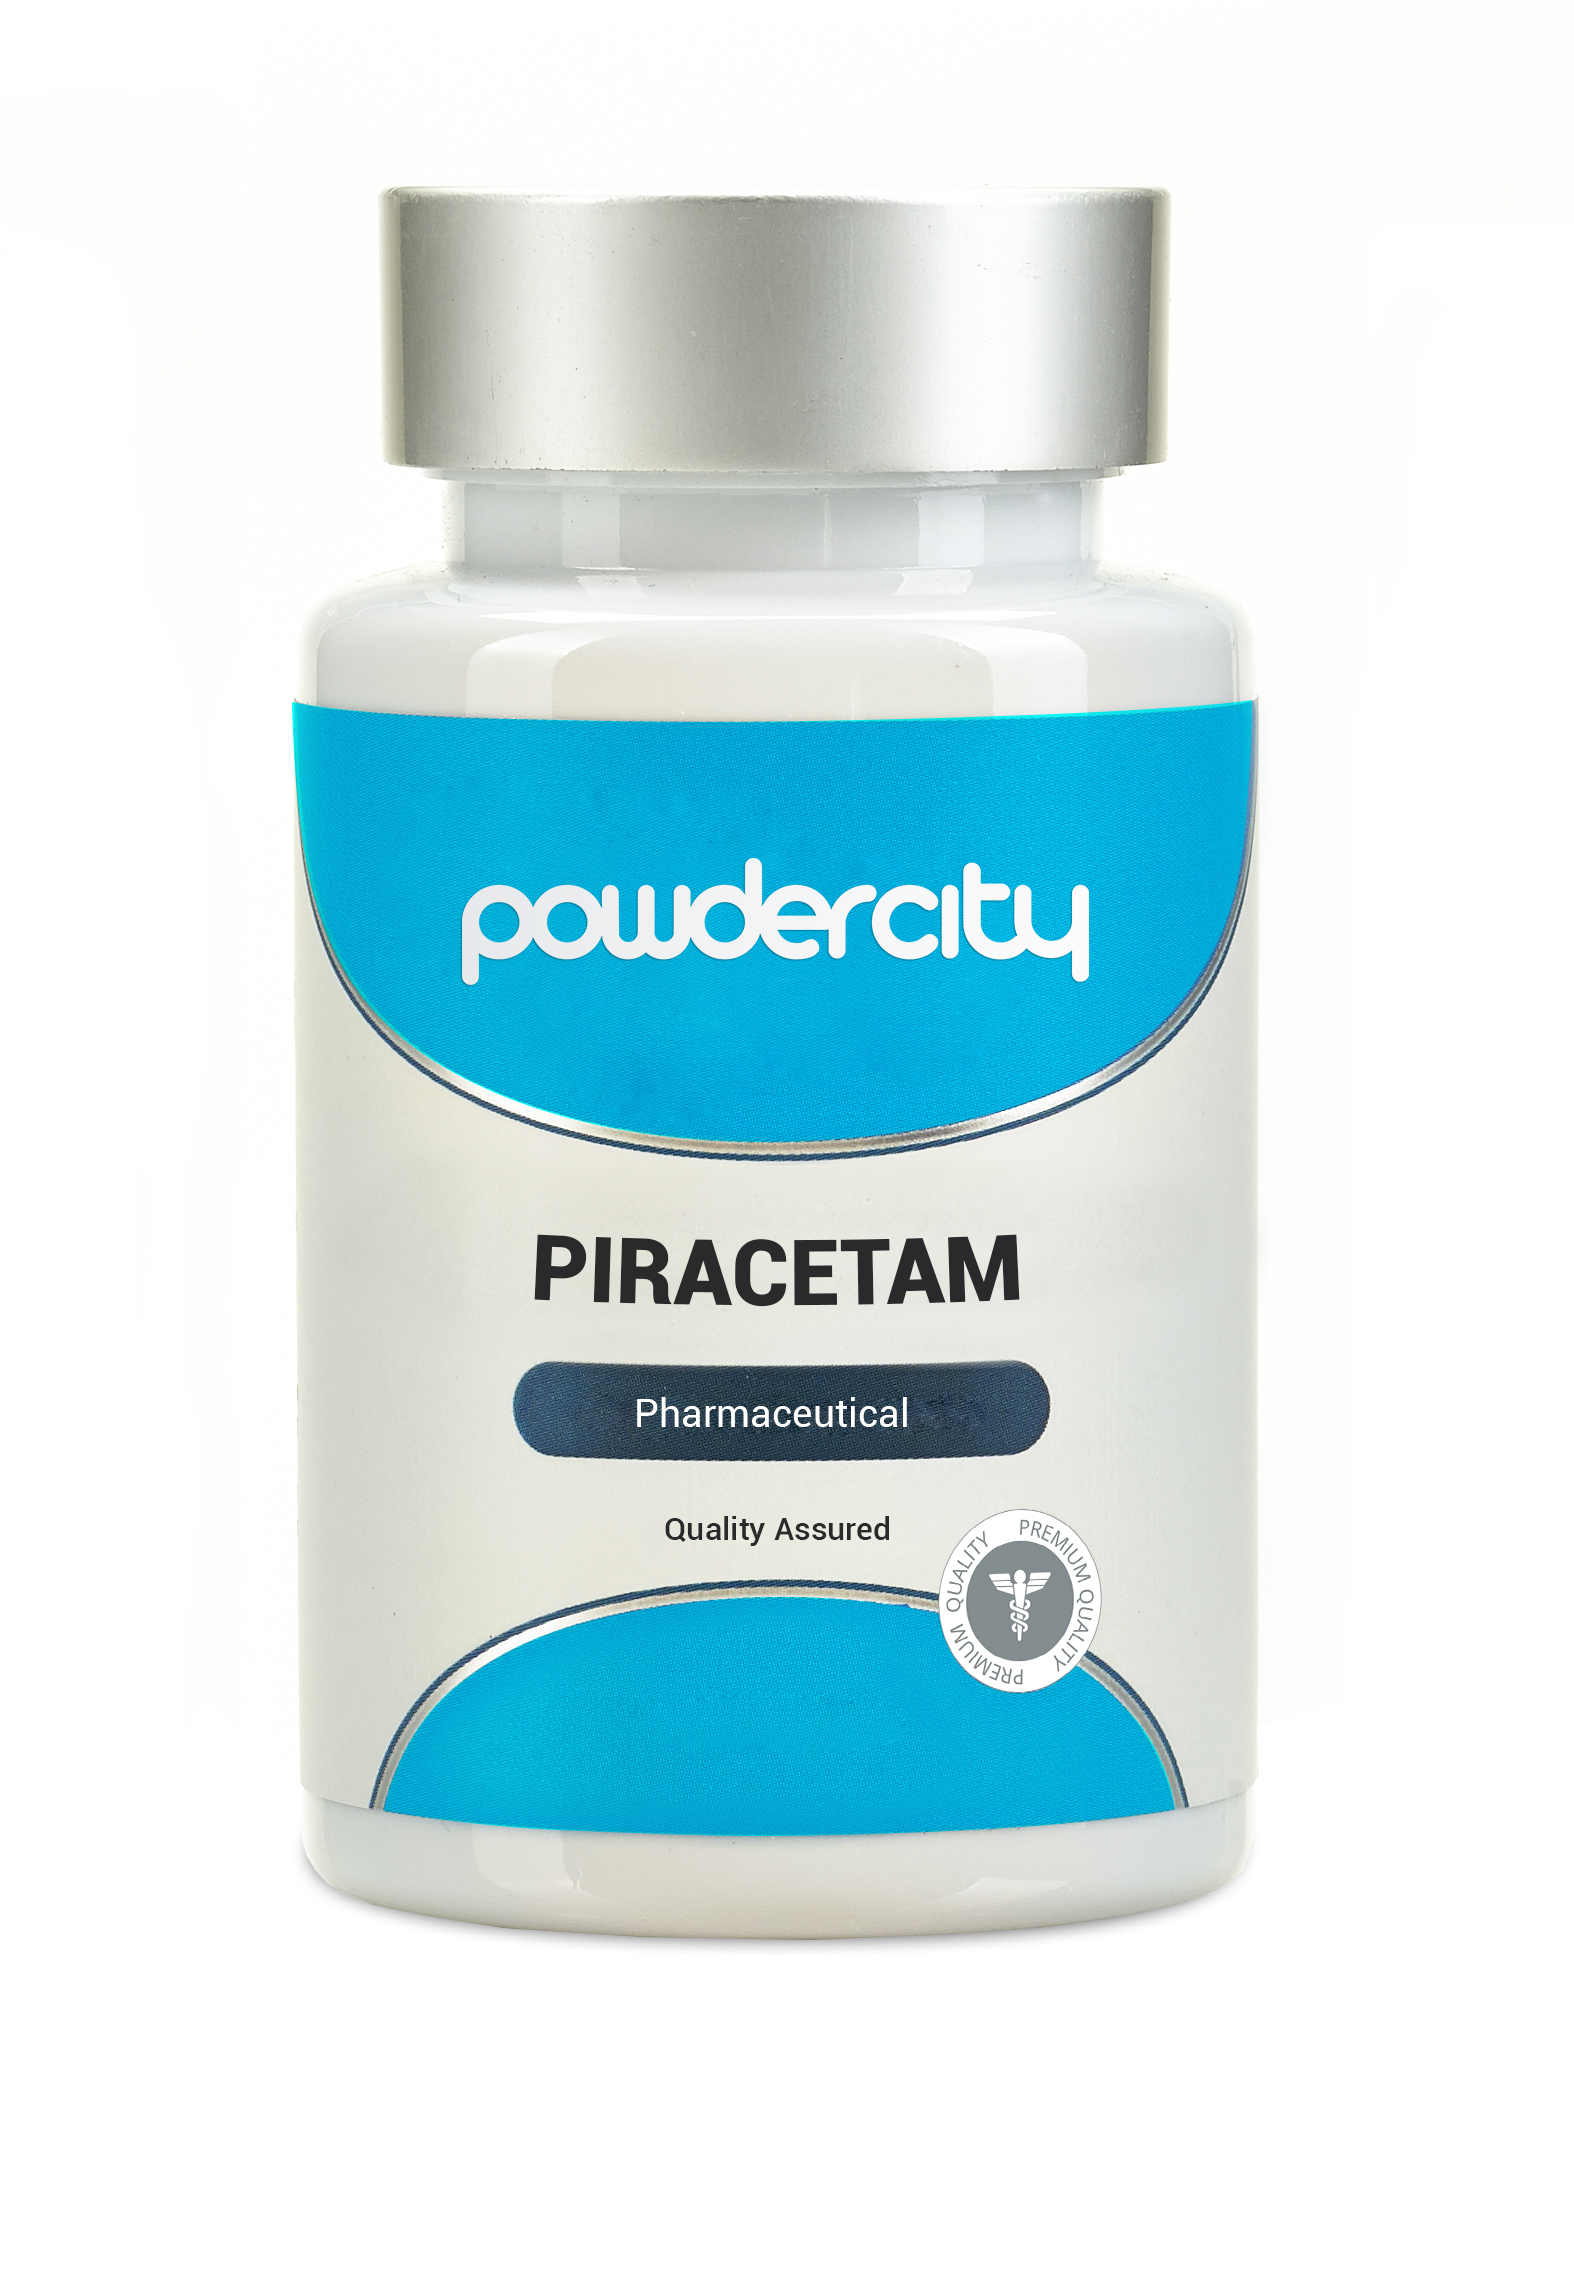 Piracetam Powder Capsules Dosage Side Effects Stacks